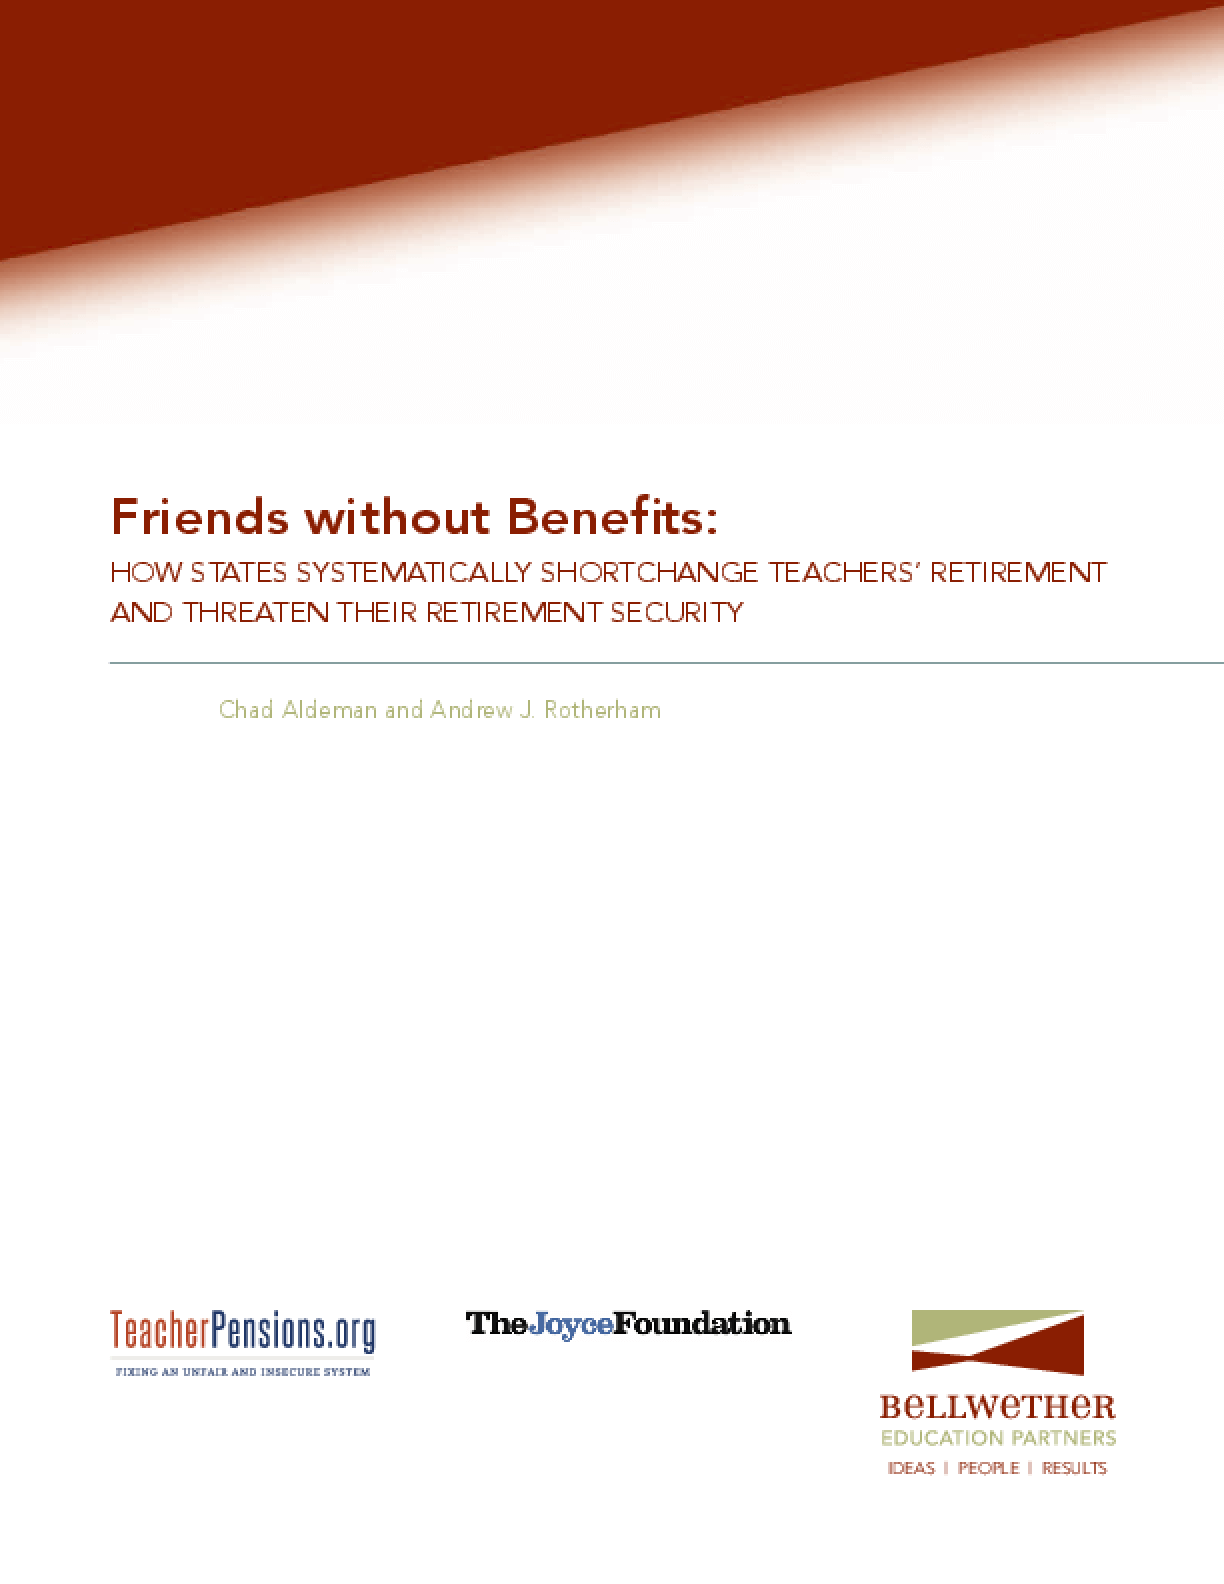 Friends without Benefits: How States Systematically Shortchange Teachers' Retirement and Threaten Their Retirement Security